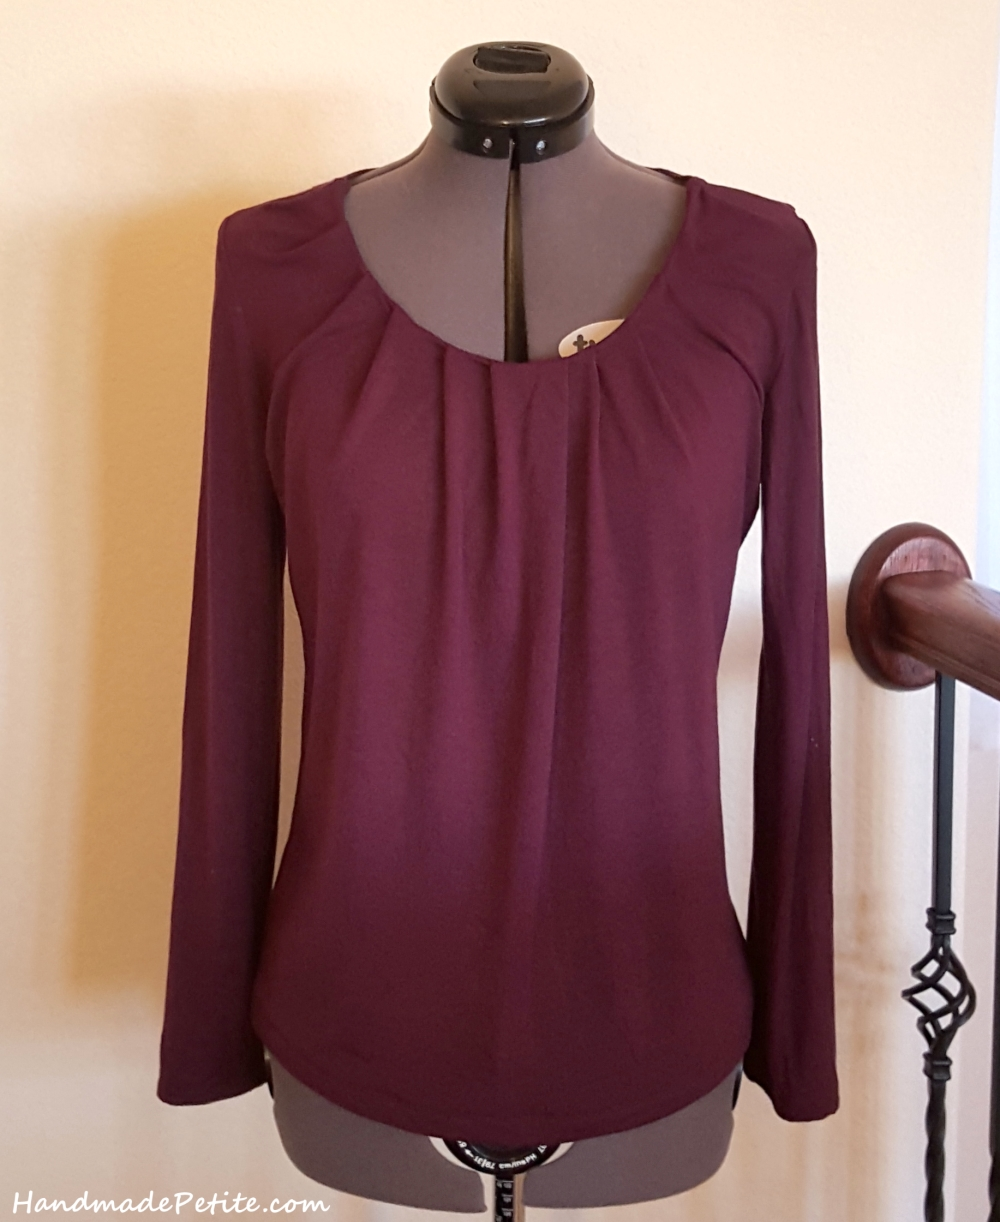 Sewing purple knit top with neck pleating detail.